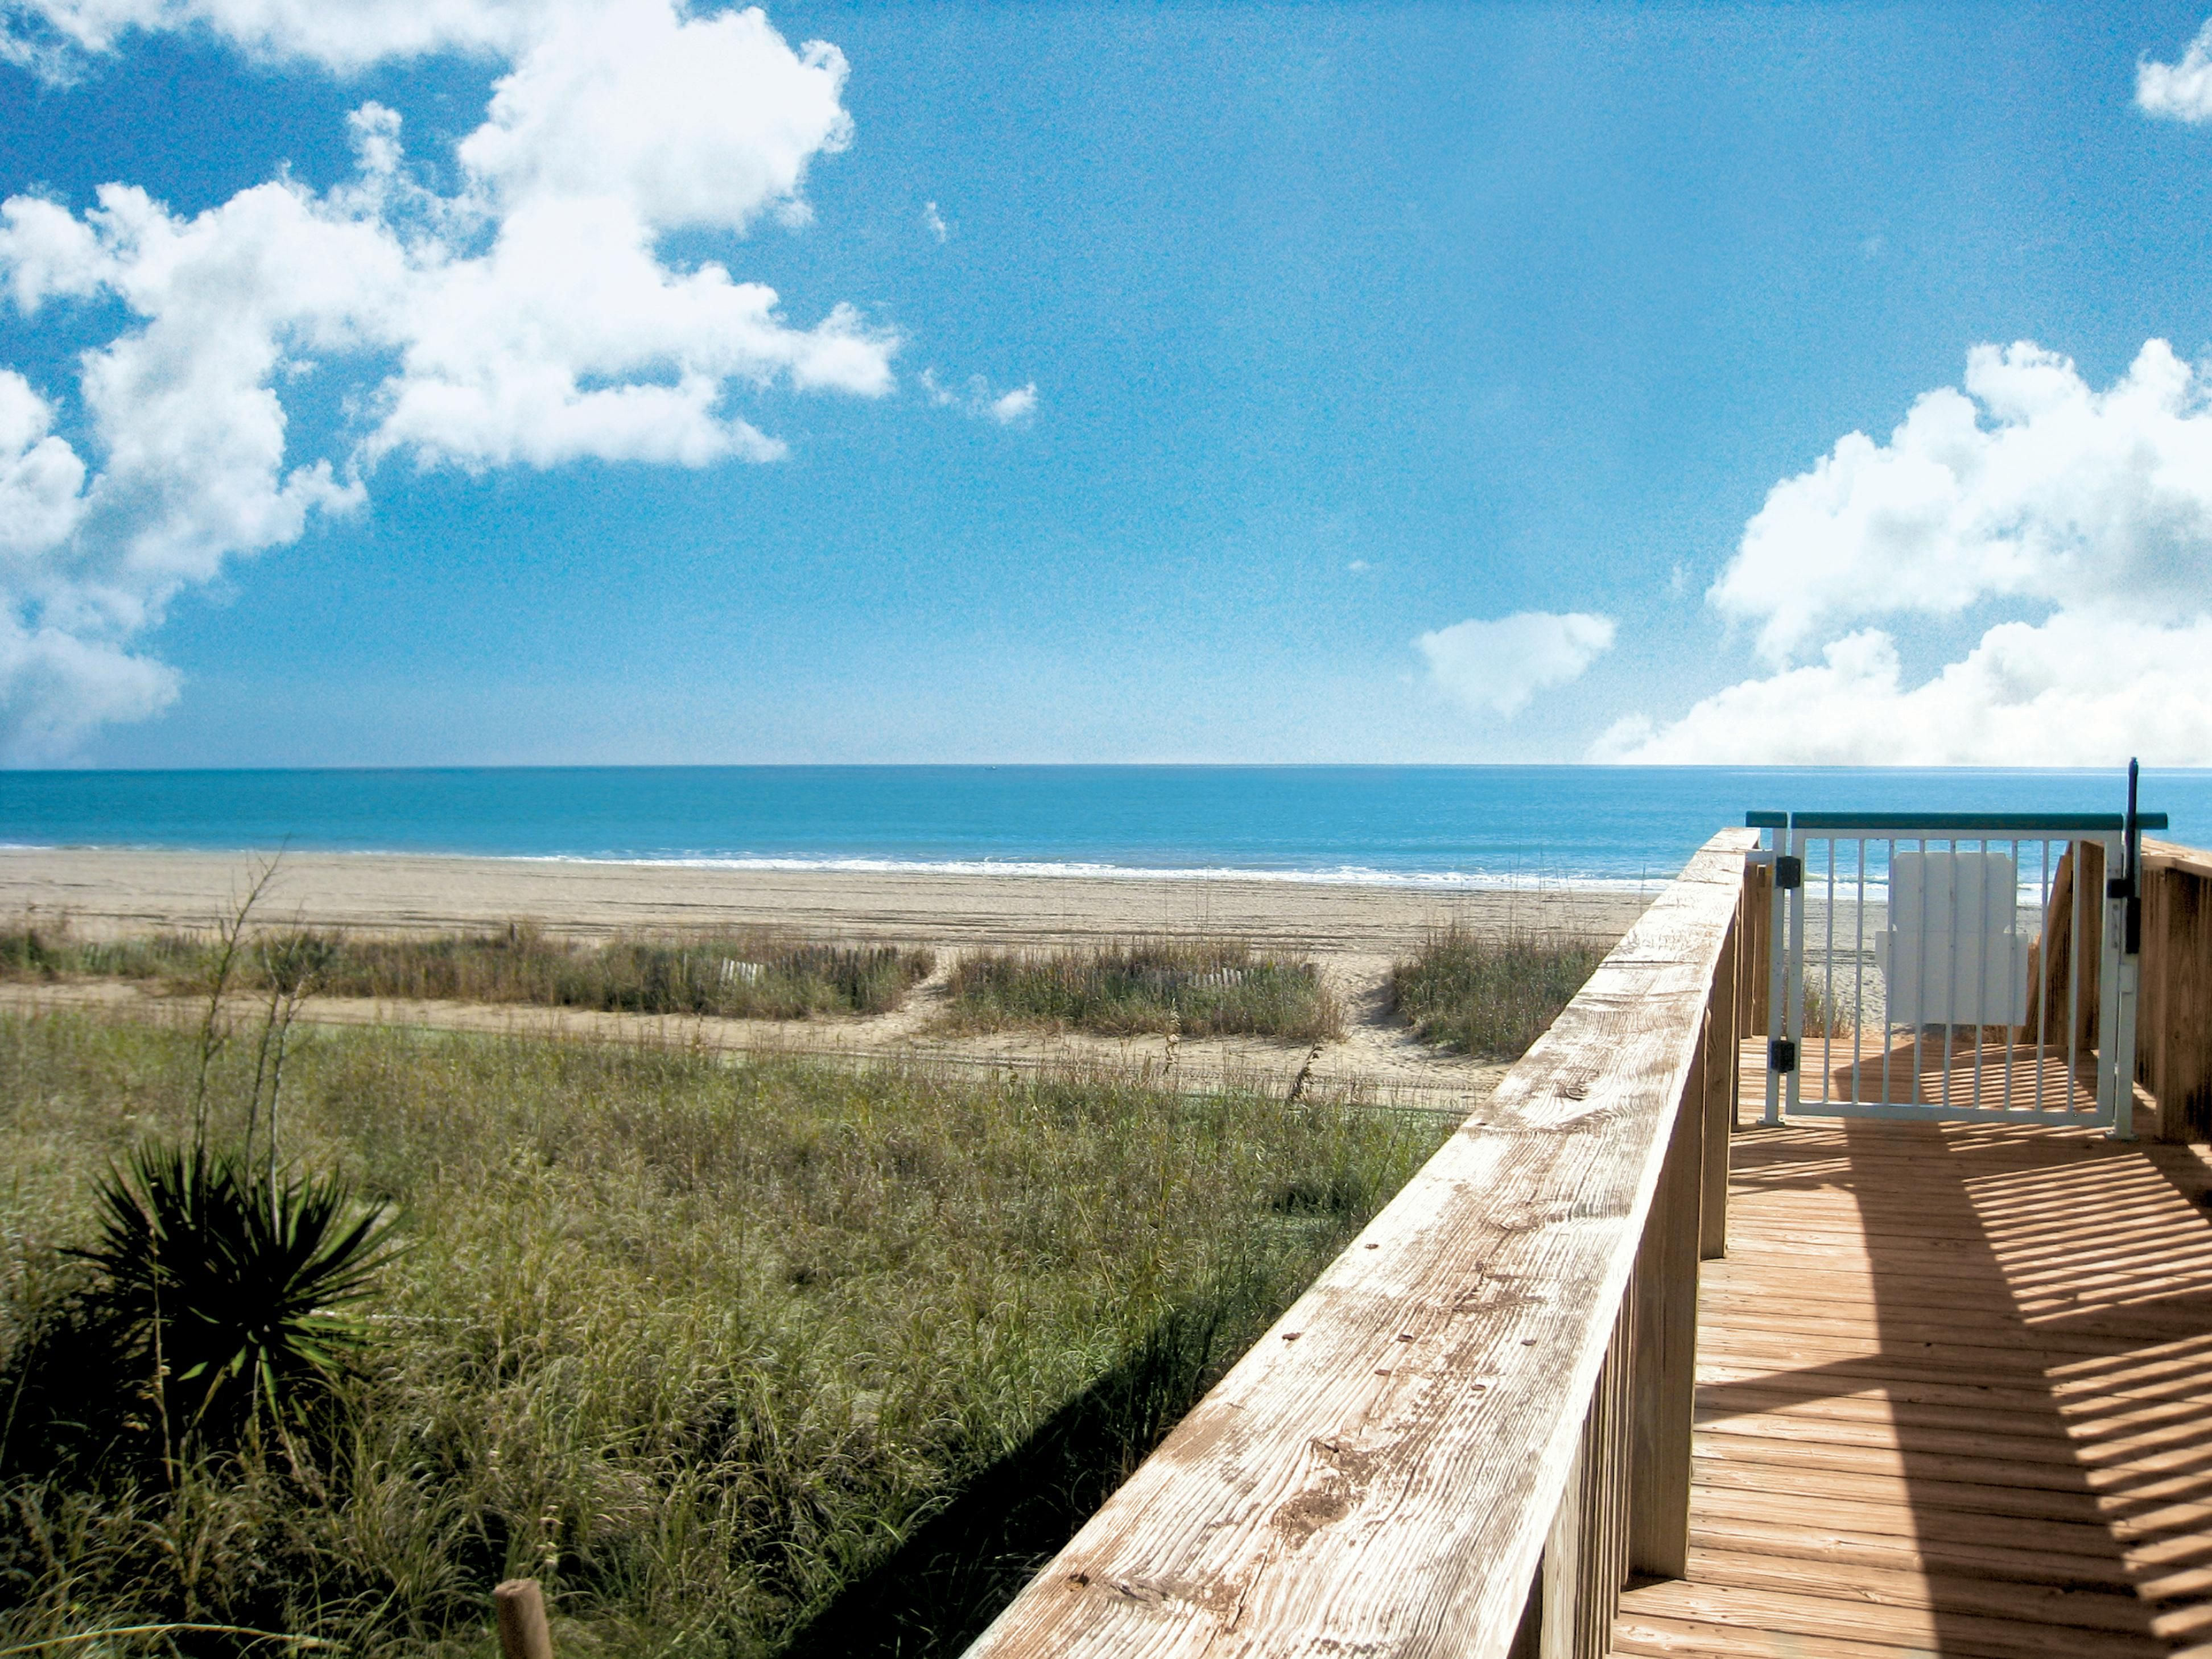 Enjoy the convenient board-walk style path down to the beach